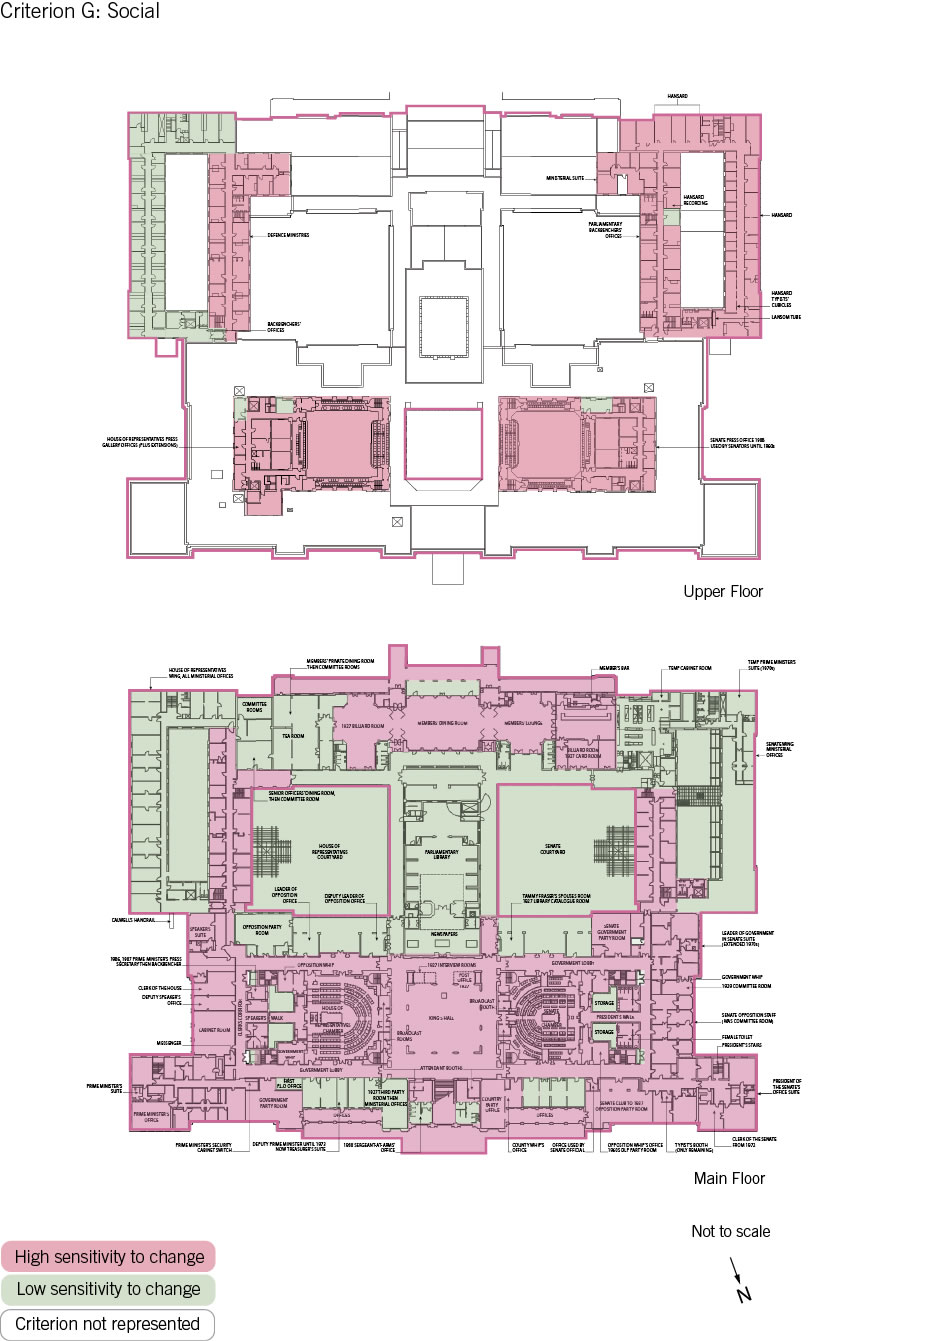 Old Parliament House upper and main floor plan showing the zones according to criterion G: social.